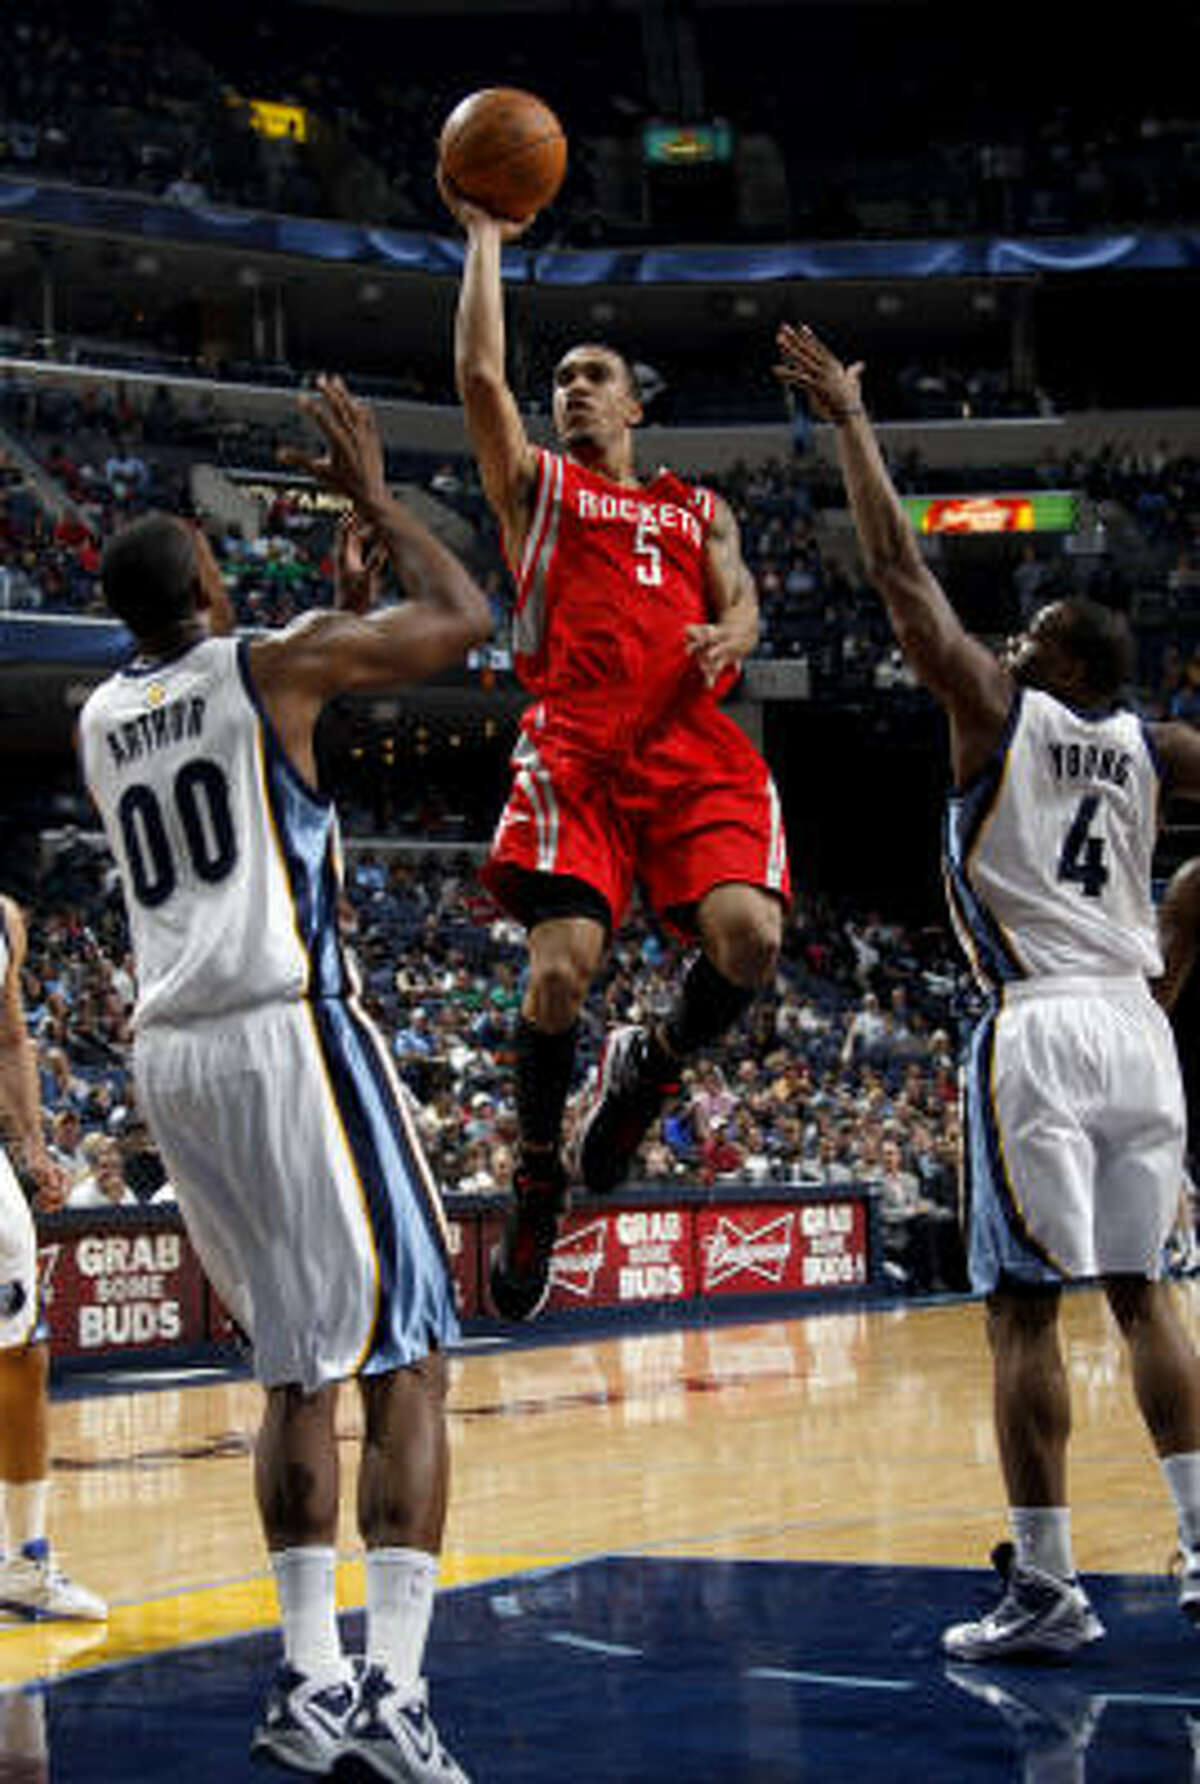 Rockets guard Courtney Lee (5) shoots over Grizzlies forwards Darrell Arthur (00) and Sam Young in the first half.